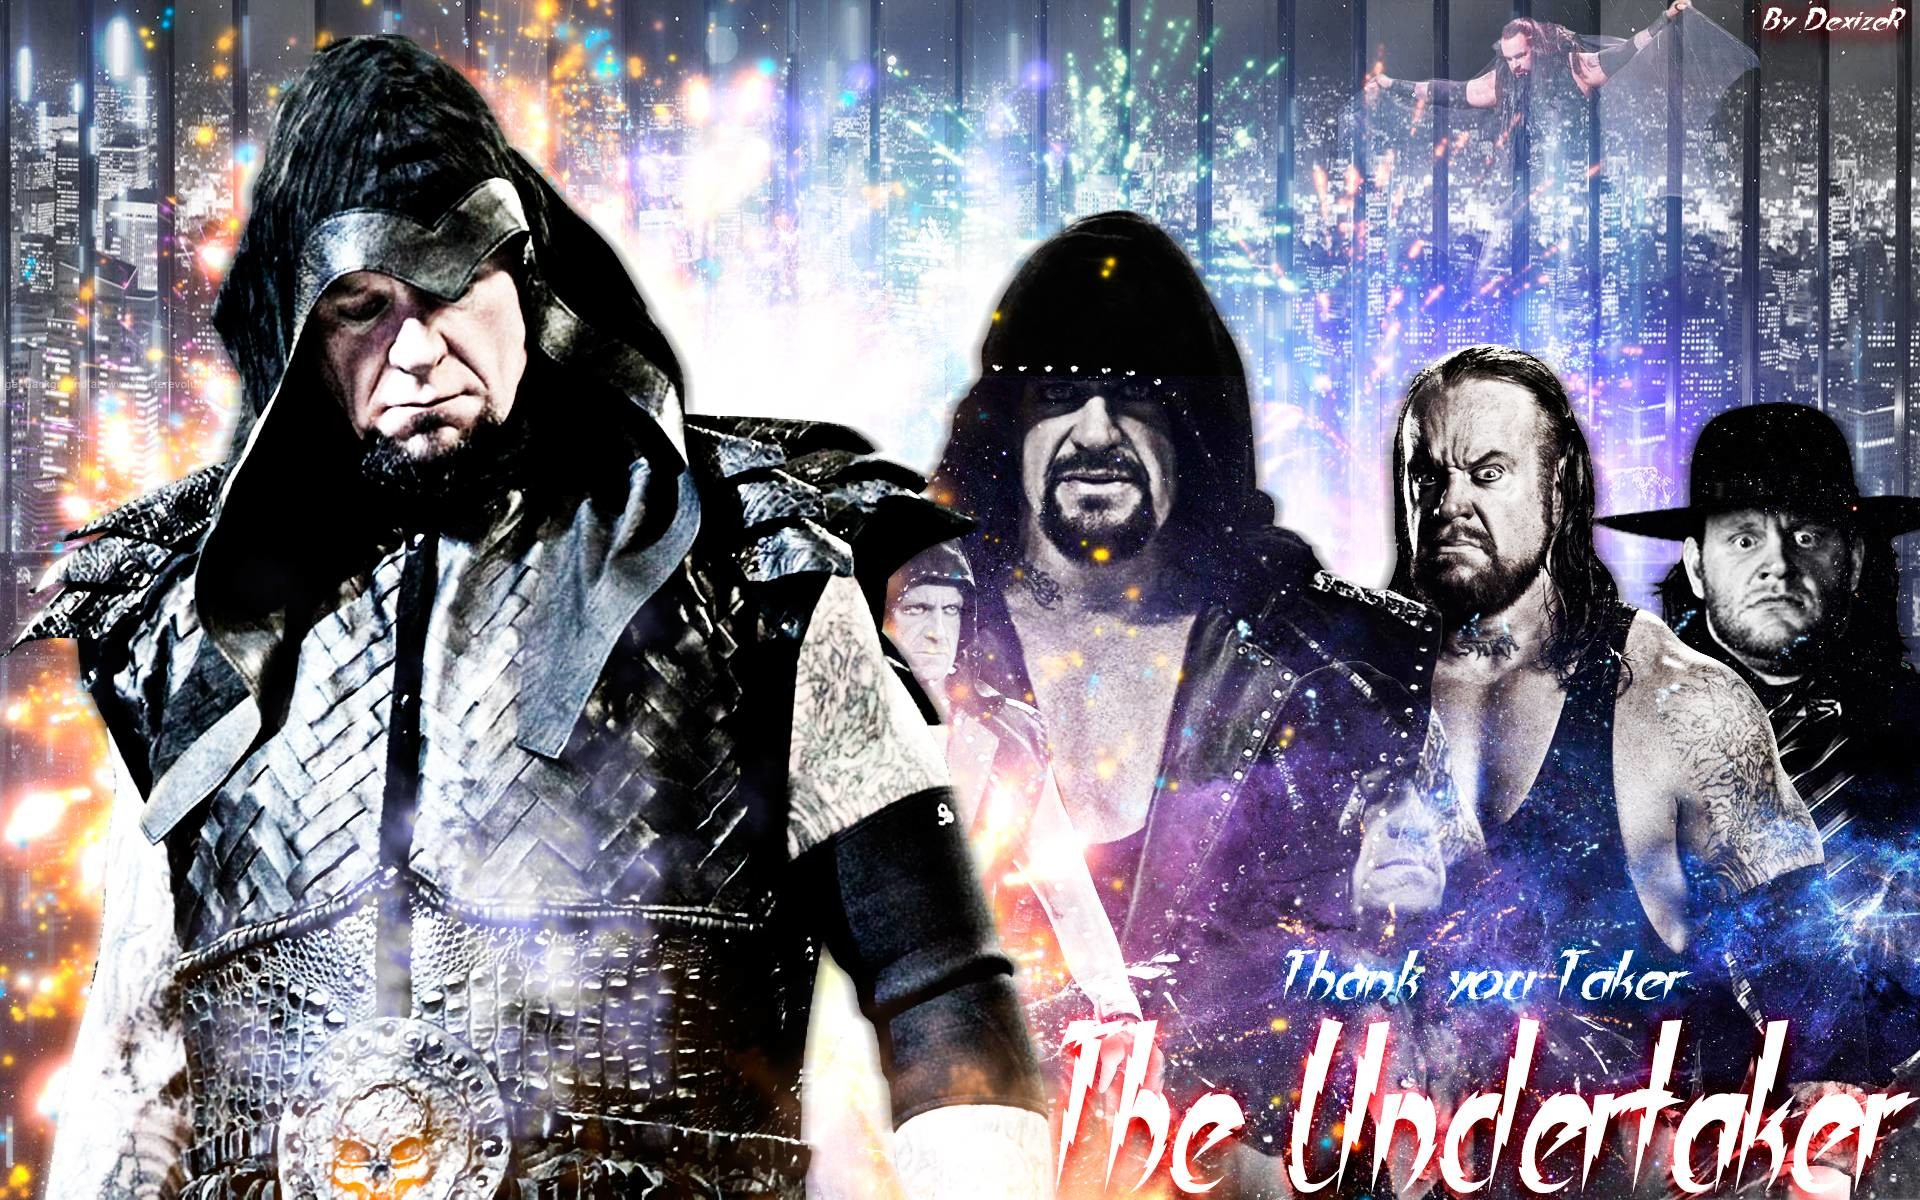 1920x1440 Check Out Undertaker WWE Champion HD Photos And Wallpapers In Widescreen Resolution See Superstar High Definition Hd Images